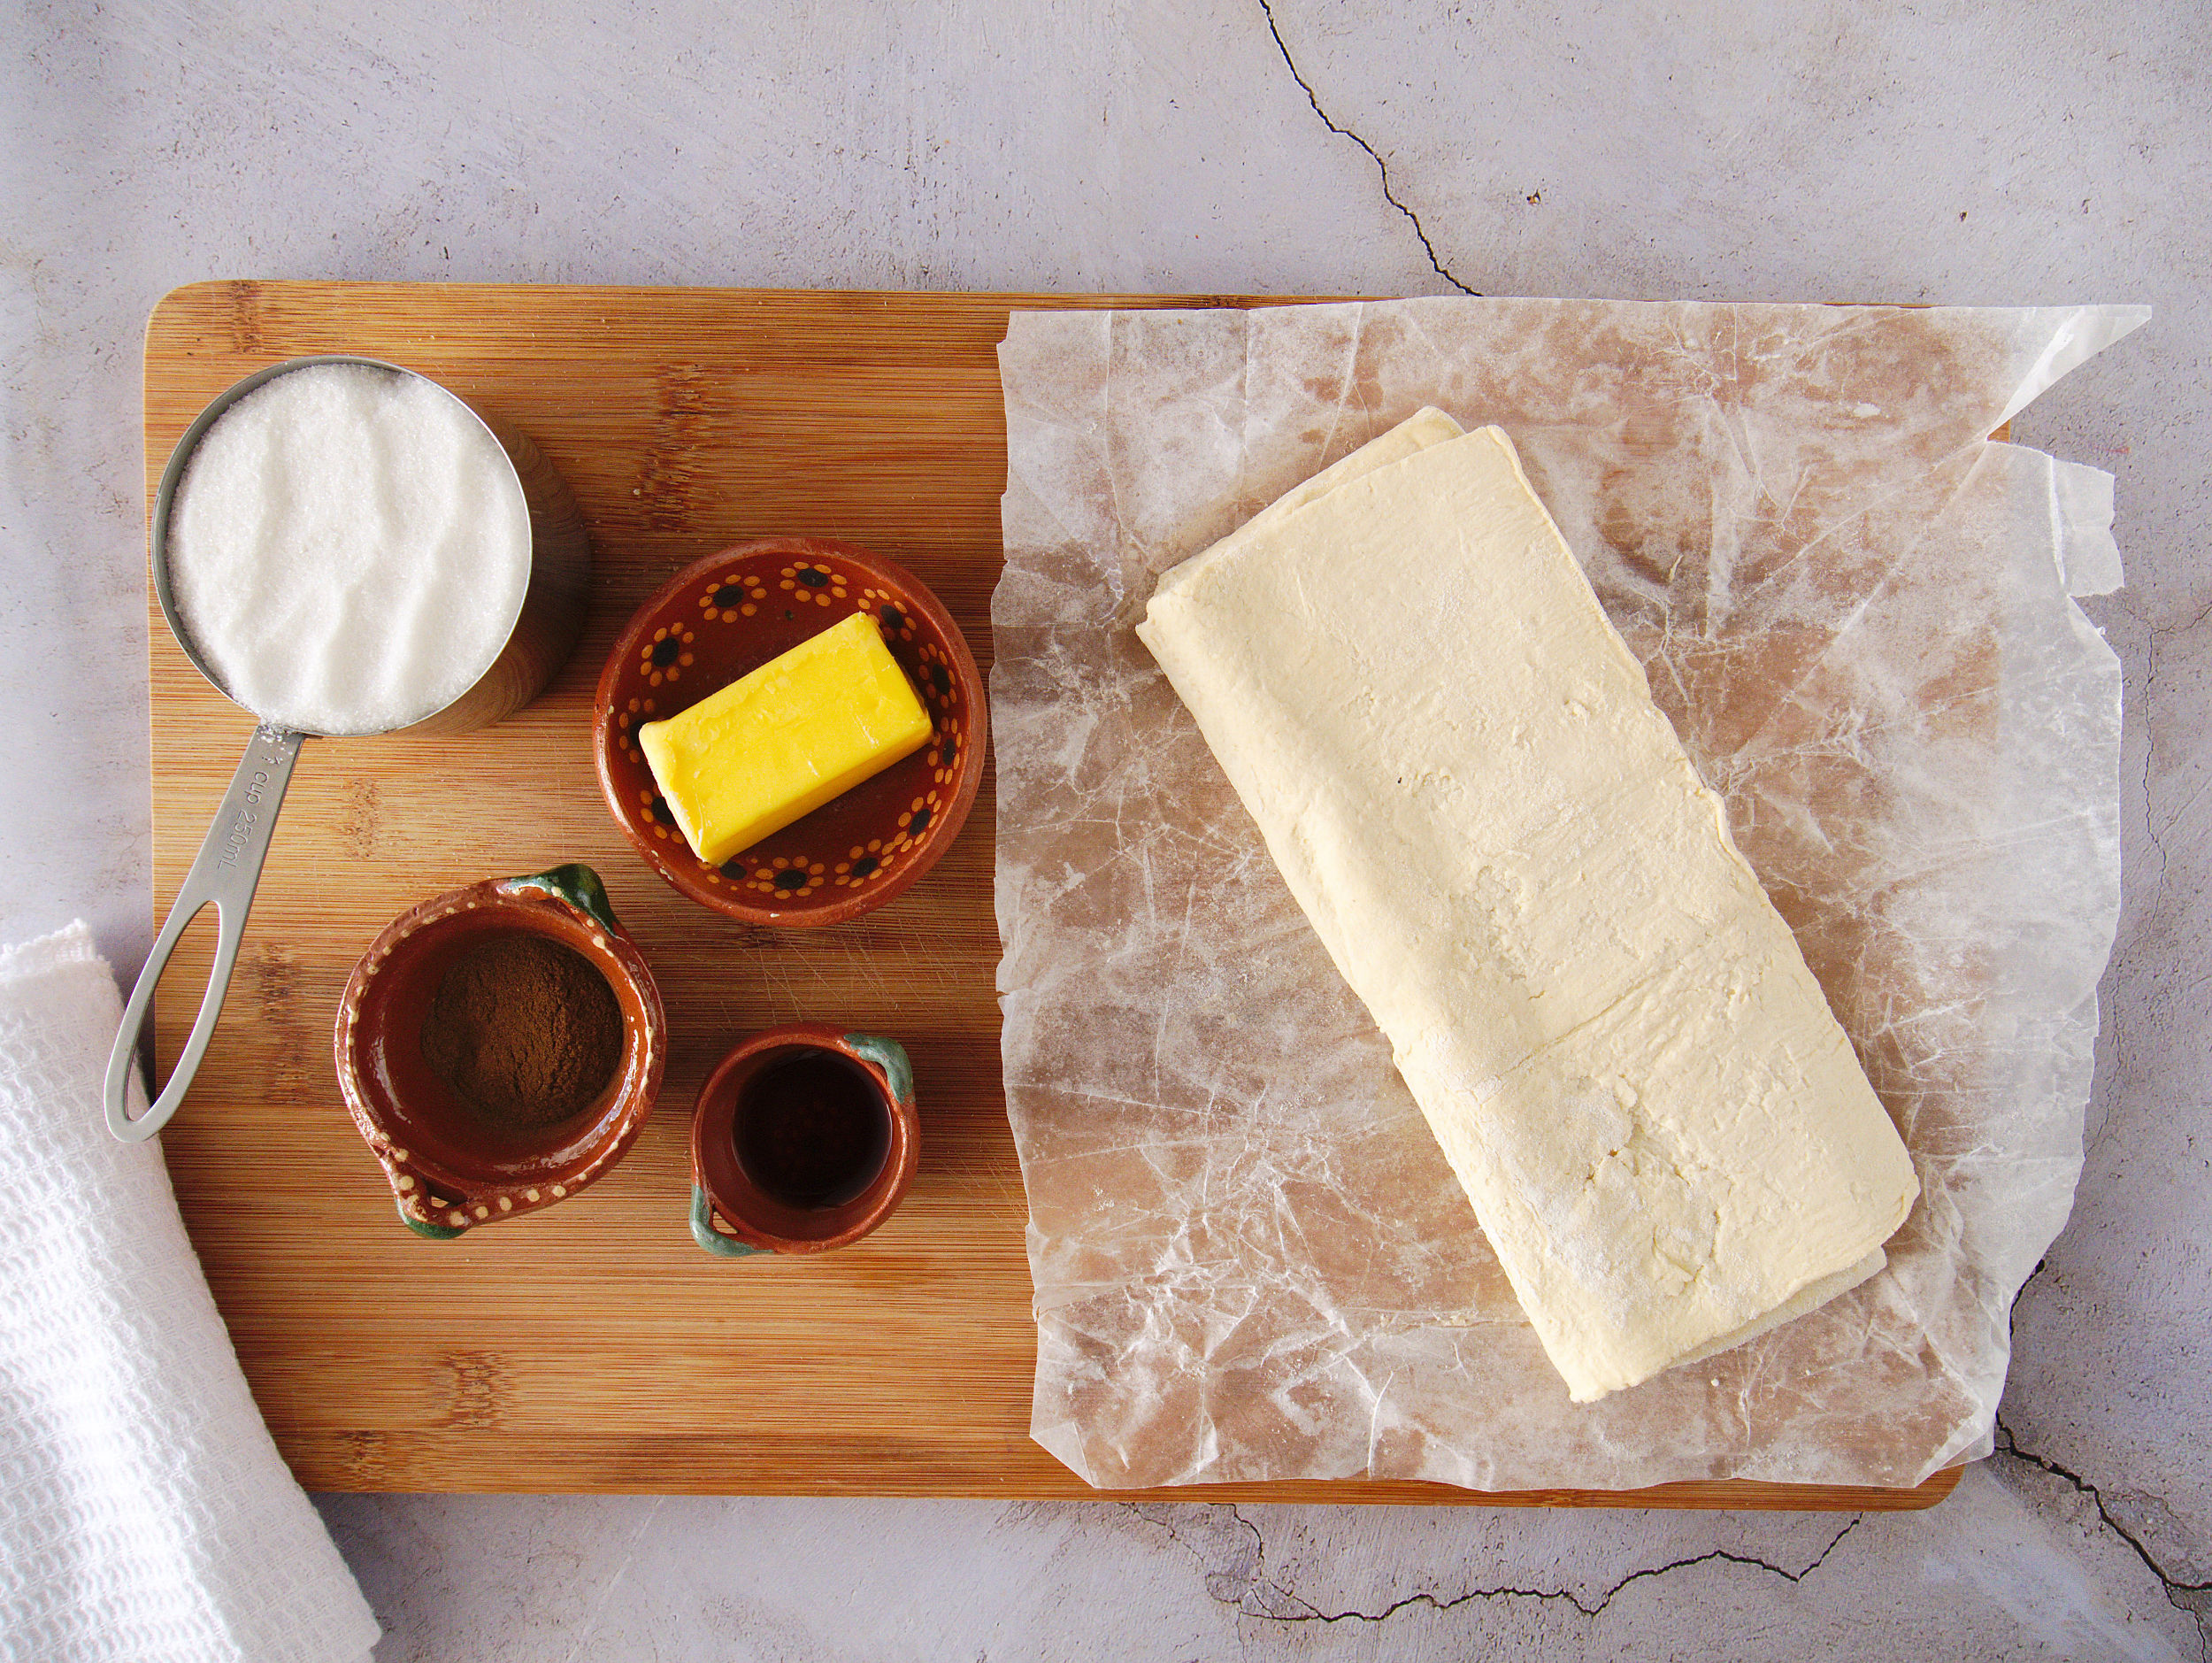 ingredients needed to make baked churros